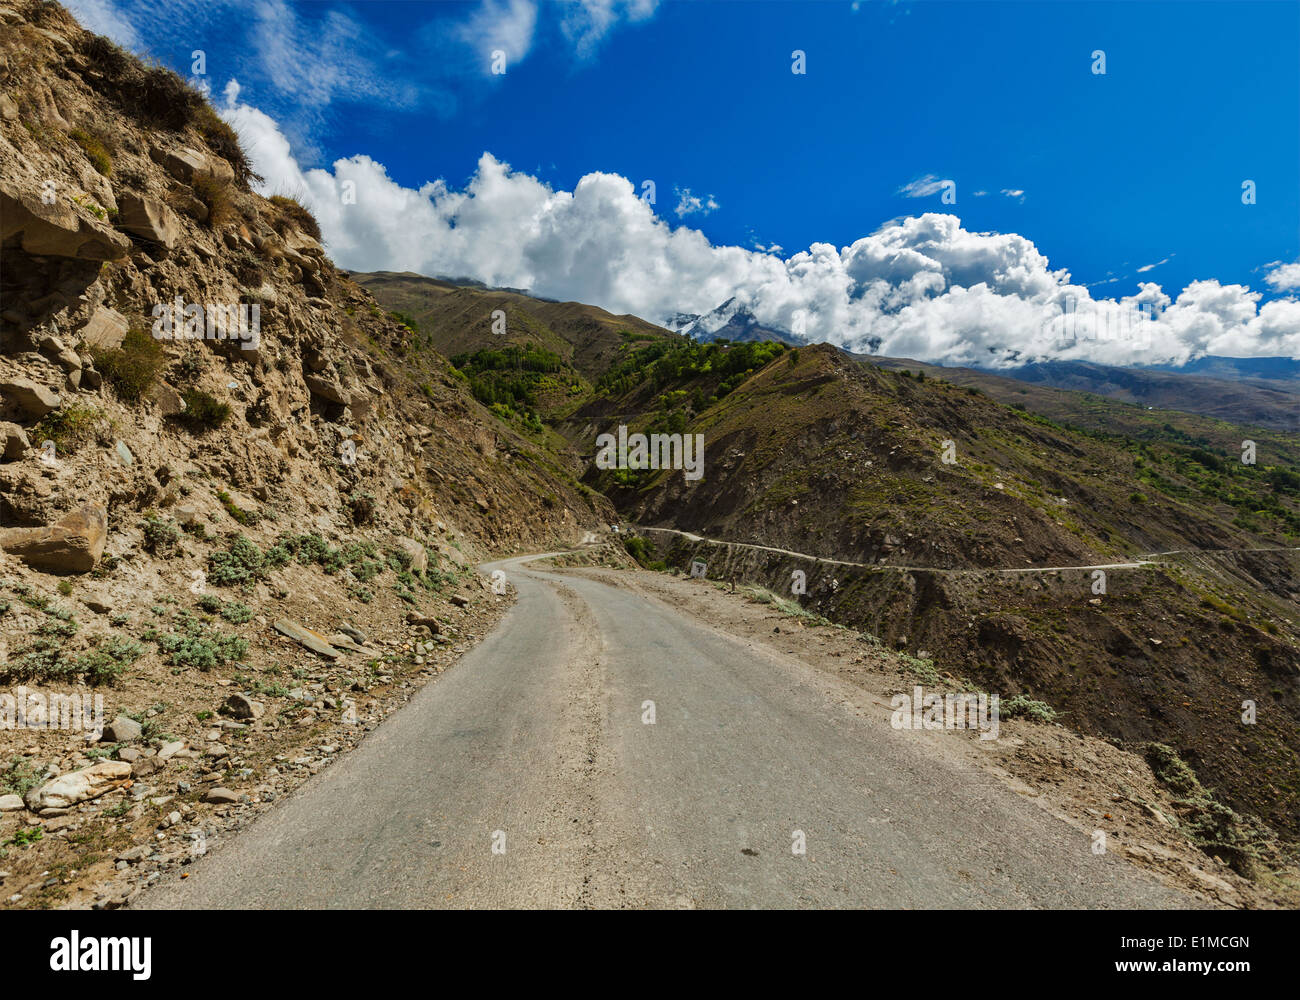 Road in Himalayas.  Lahaul valley, Himachal Pradesh, India - Stock Image